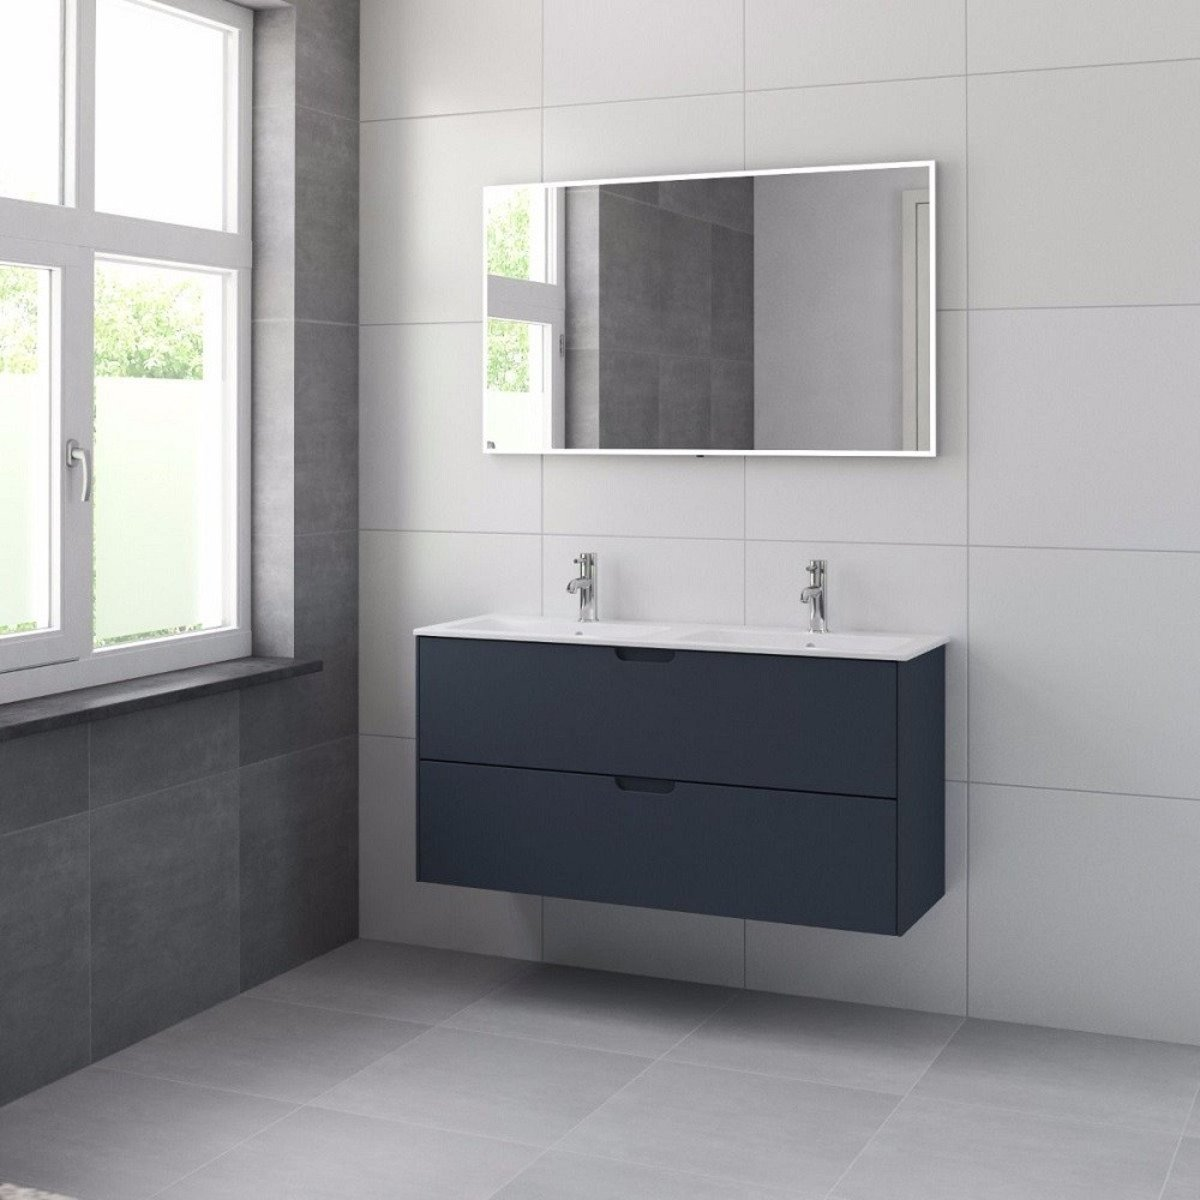 bruynzeel karo meuble sous lavabo 120cm 2 tiroirs bleu ancien 227165. Black Bedroom Furniture Sets. Home Design Ideas